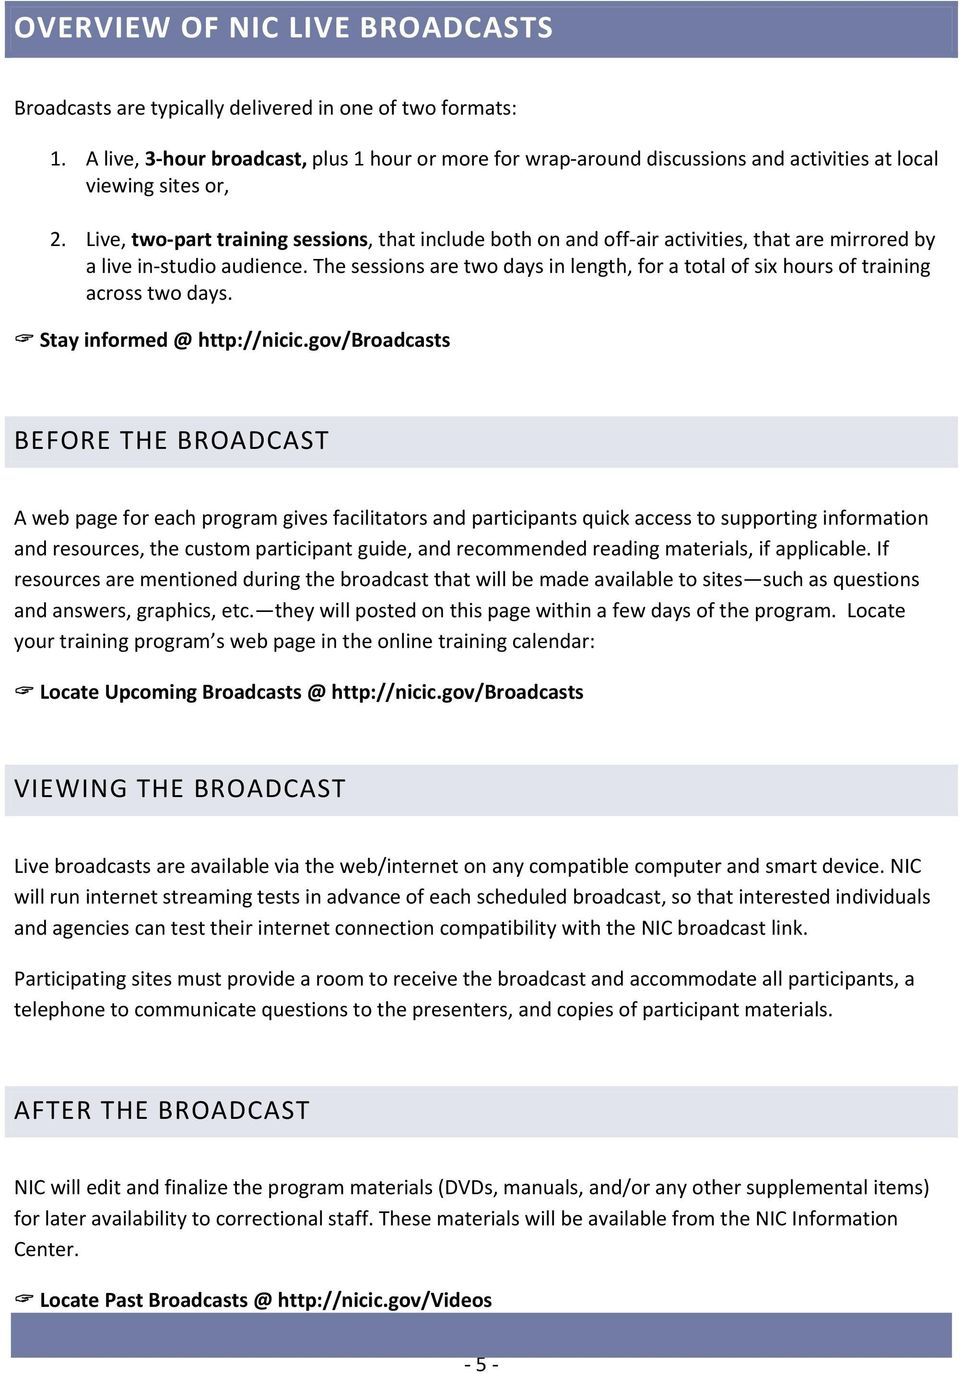 Live, two part training sessions, that include both on and off air activities, that are mirrored by a live in studio audience.